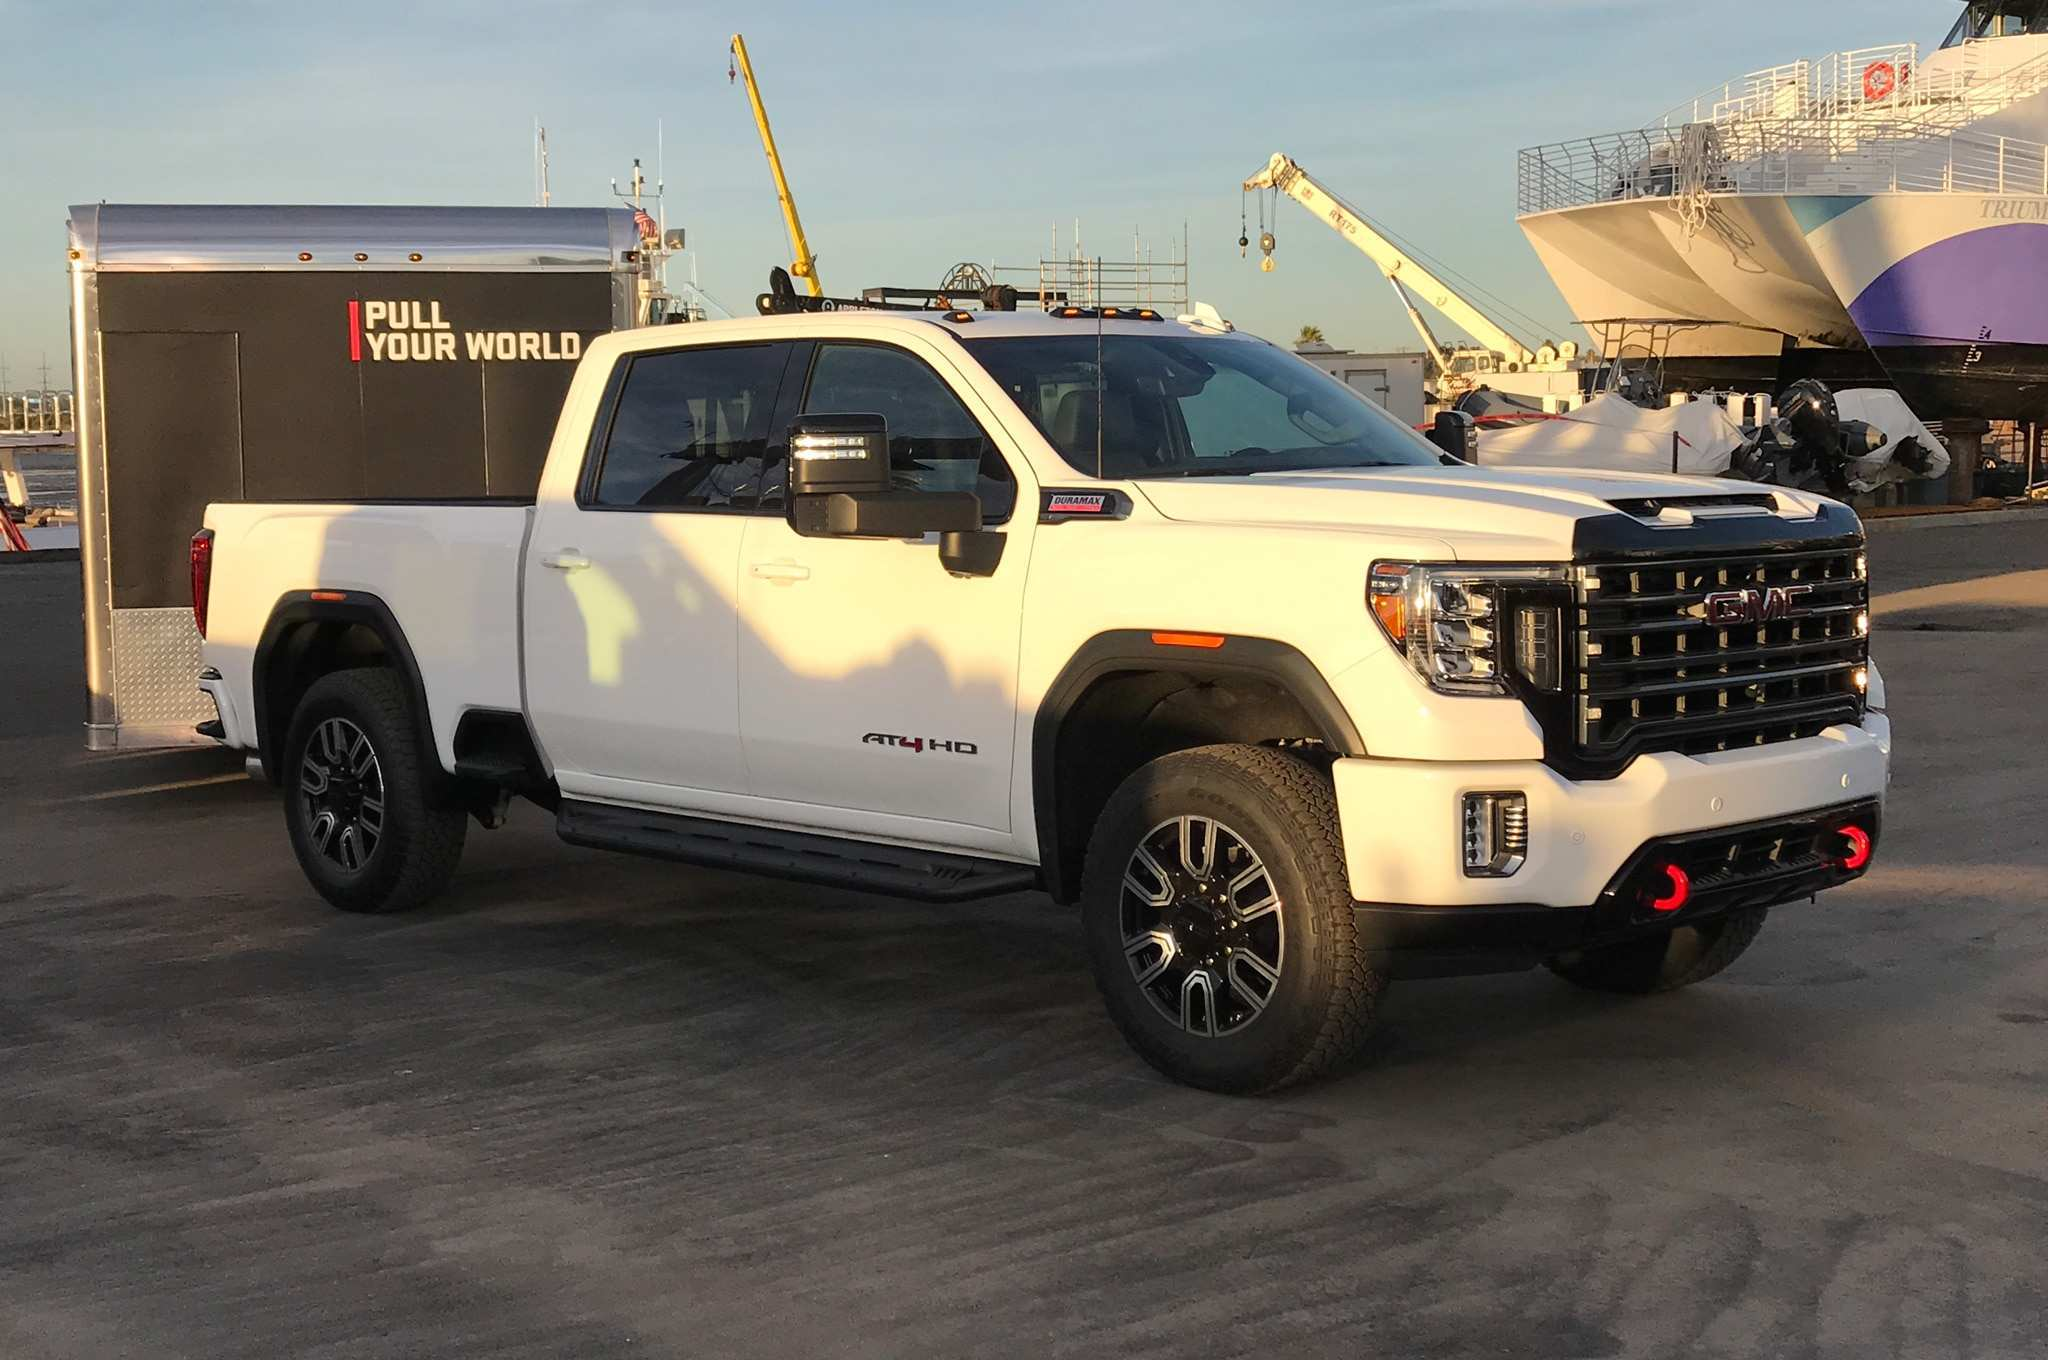 61 All New 2020 GMC Sierra Hd At4 Wallpaper